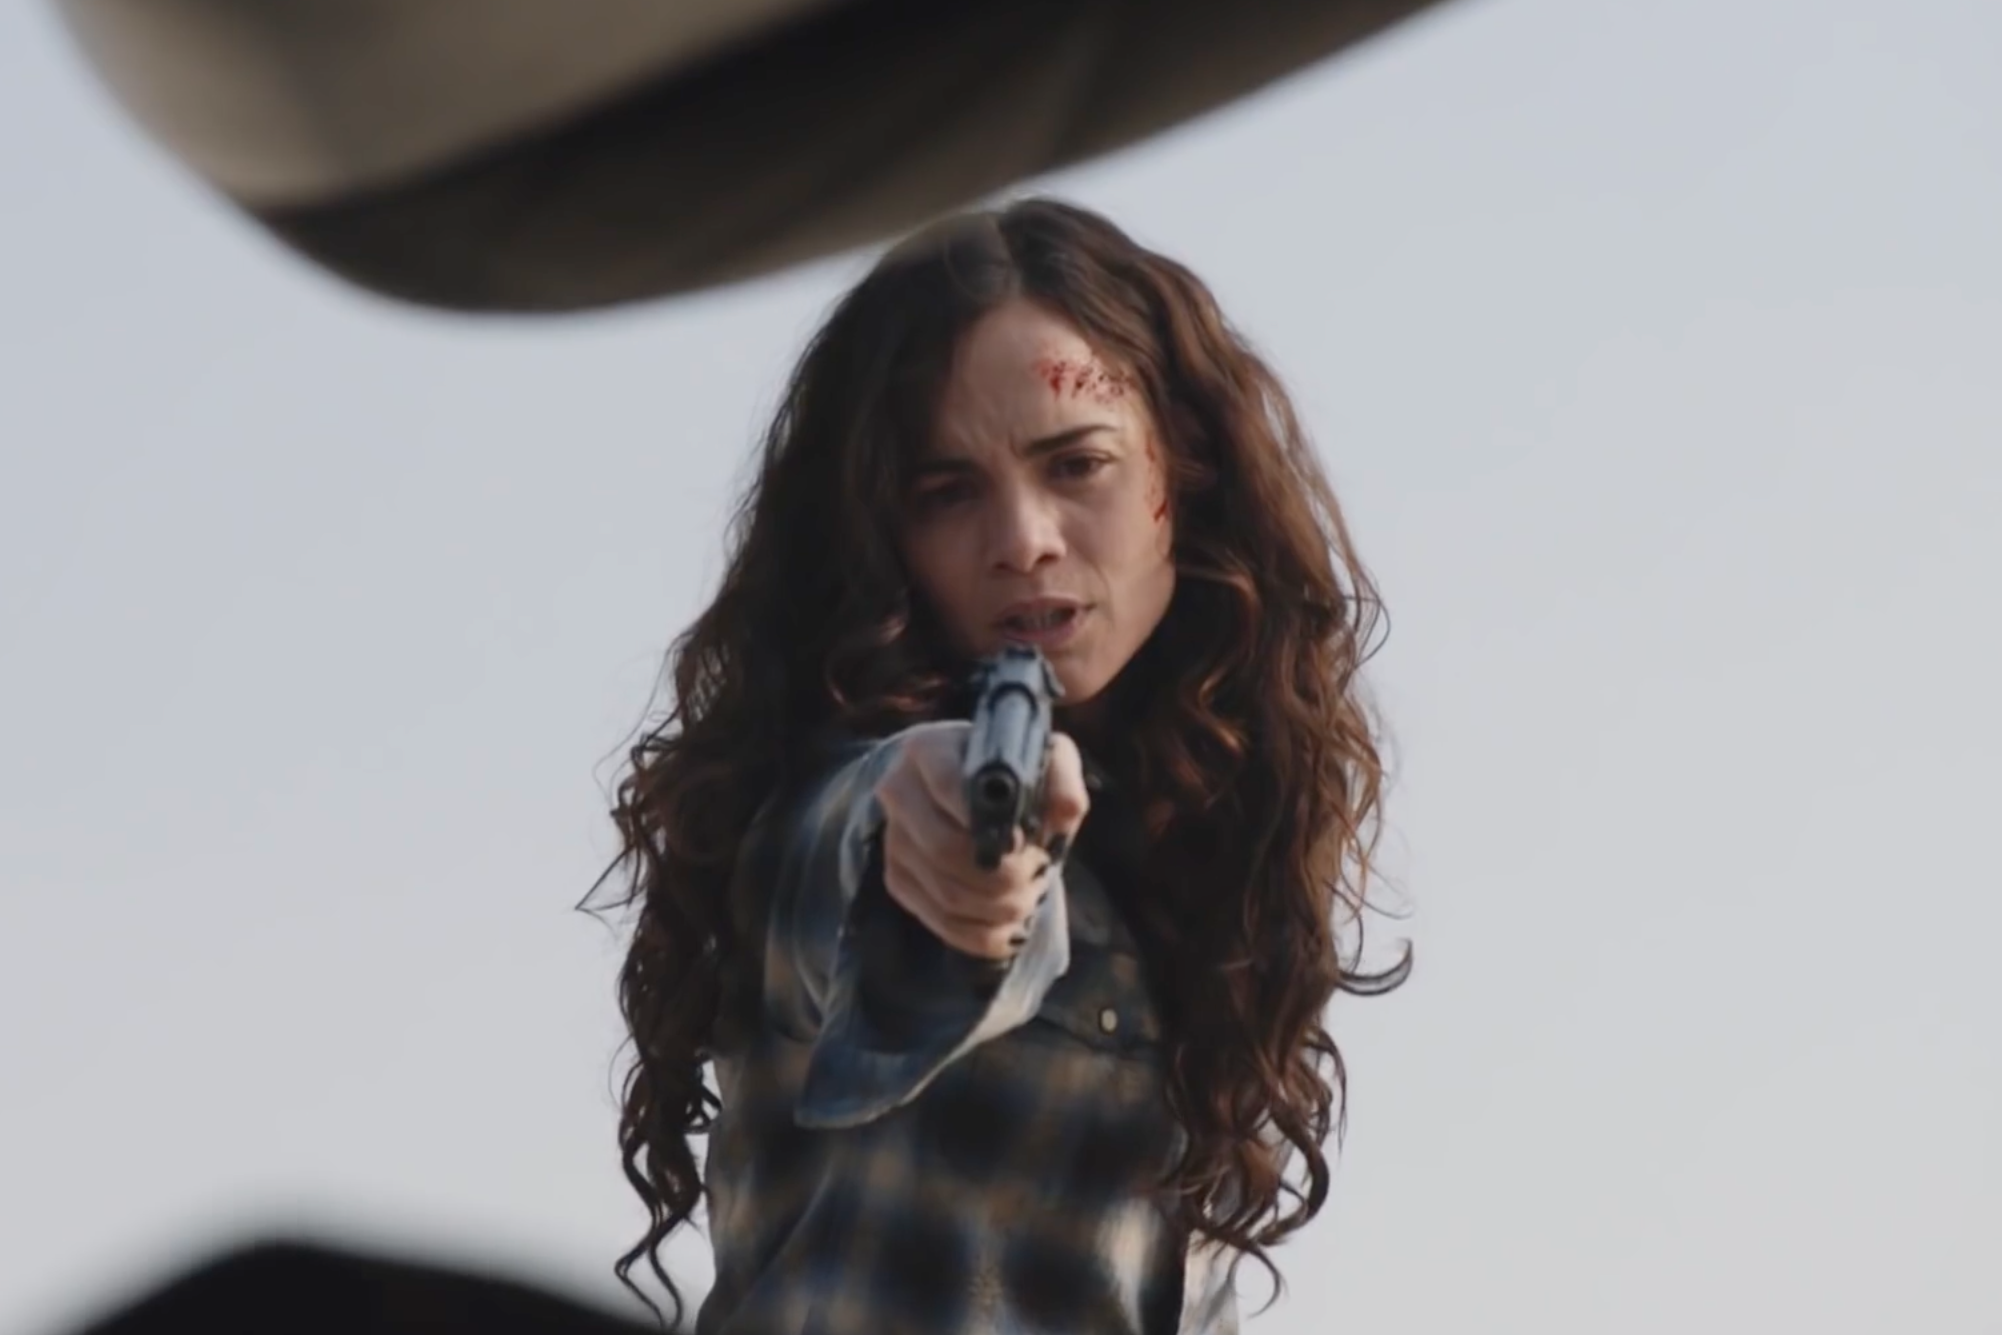 Queen of the South Season 4 Episode 3